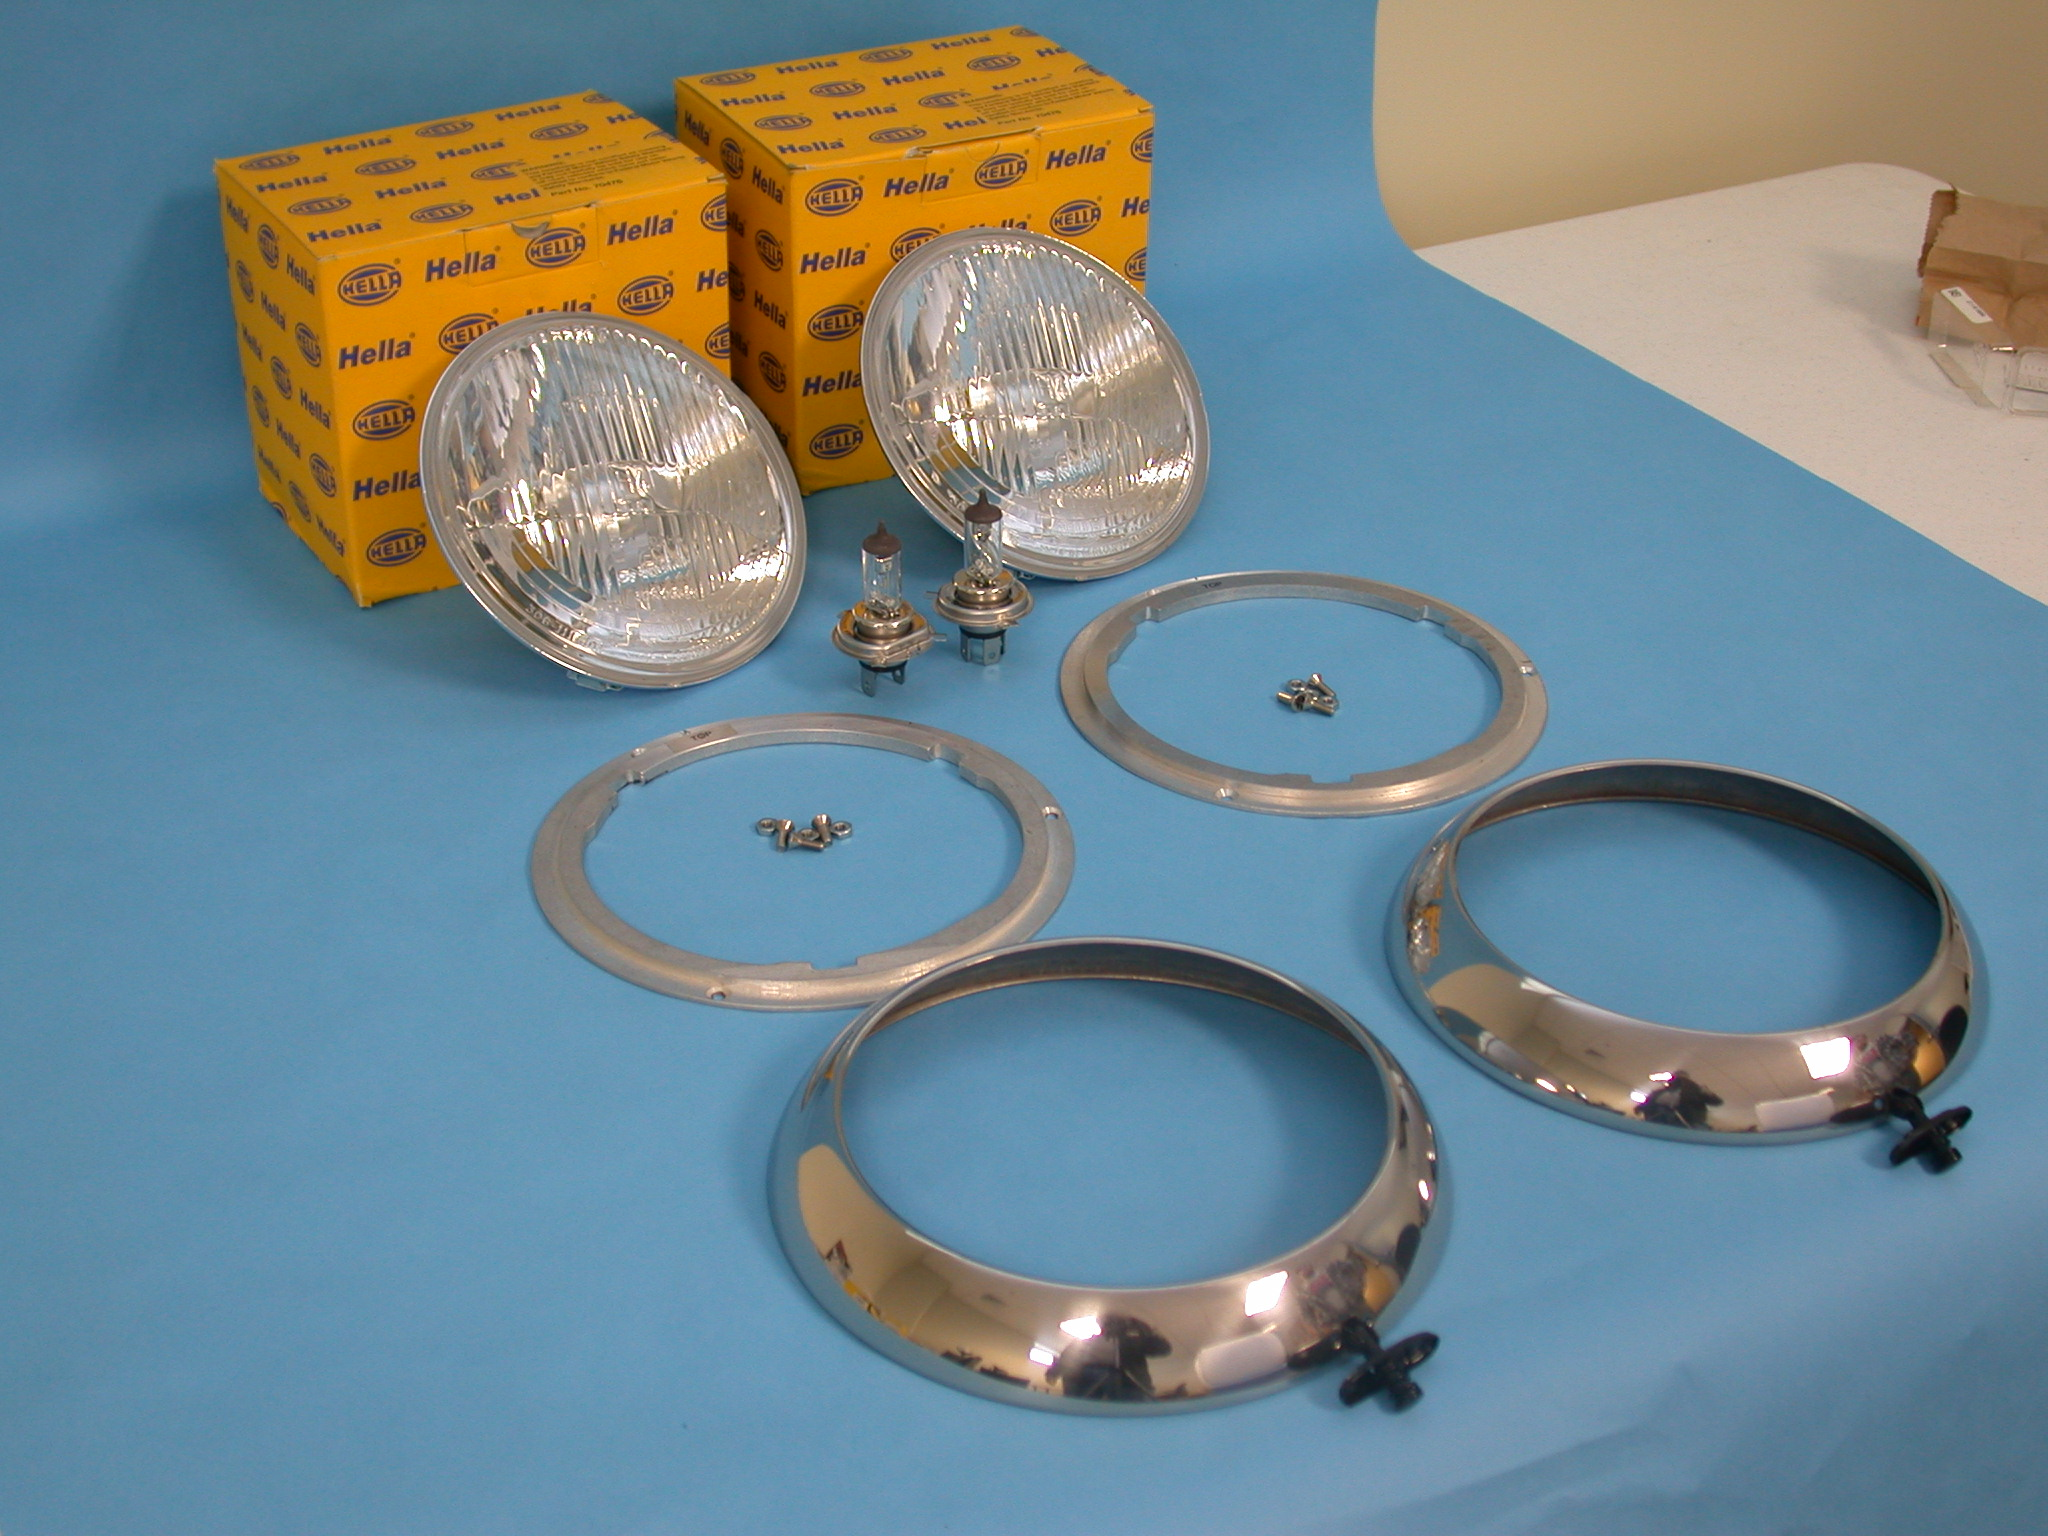 THIS IS WHAT COMES IN THE KIT.  2)HELLA BULBD, 2) ADAPTOR RINGS, 2) CUSTOM STAINLESS TRIM RINGS, 1) COMPLETE HARDWARE KIT.